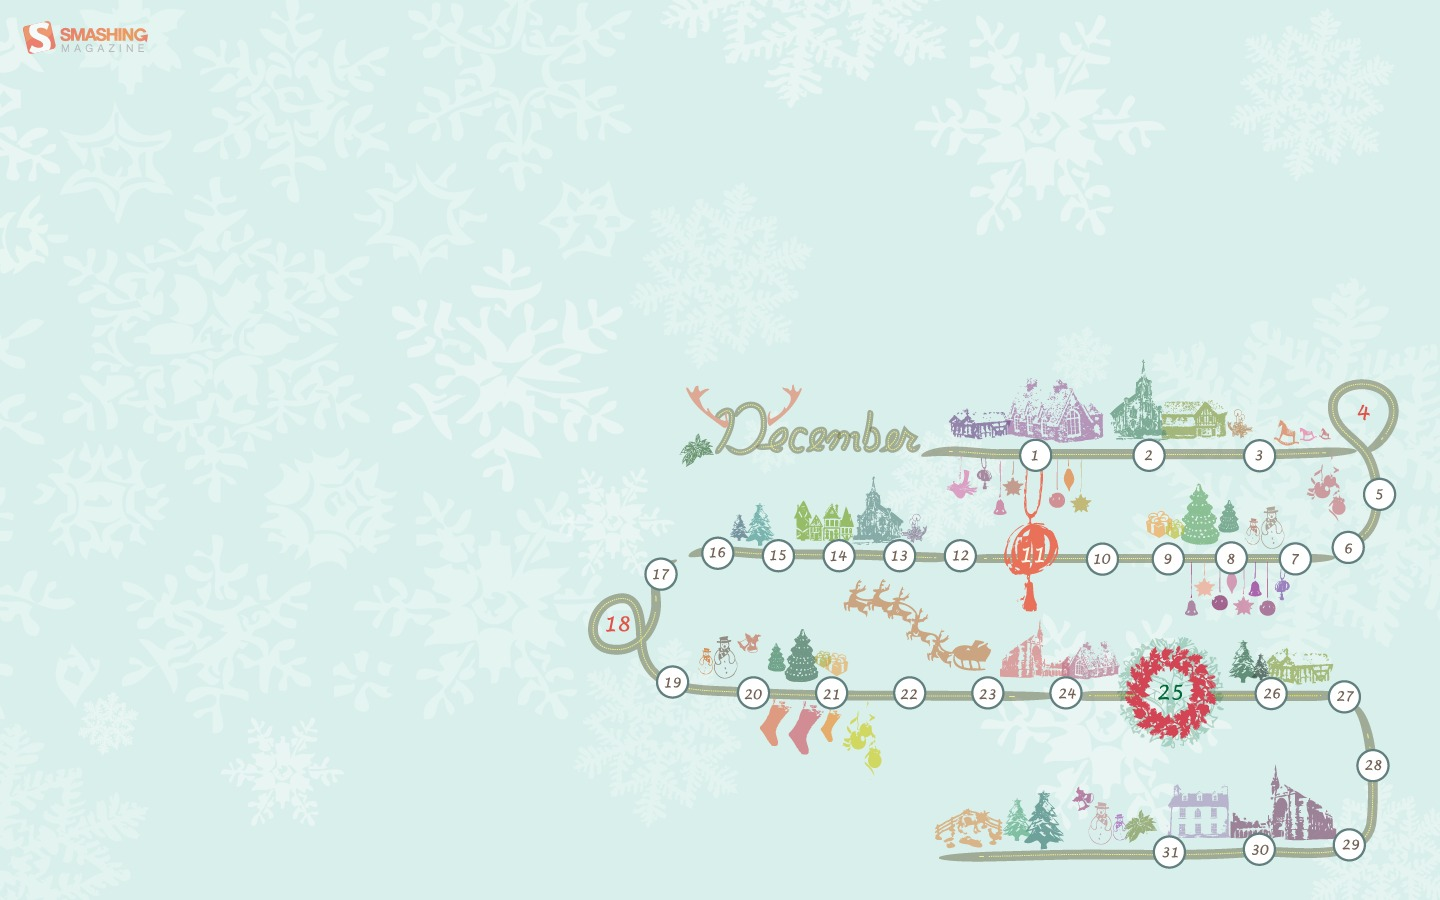 In January Calendar Wallpaper 31276